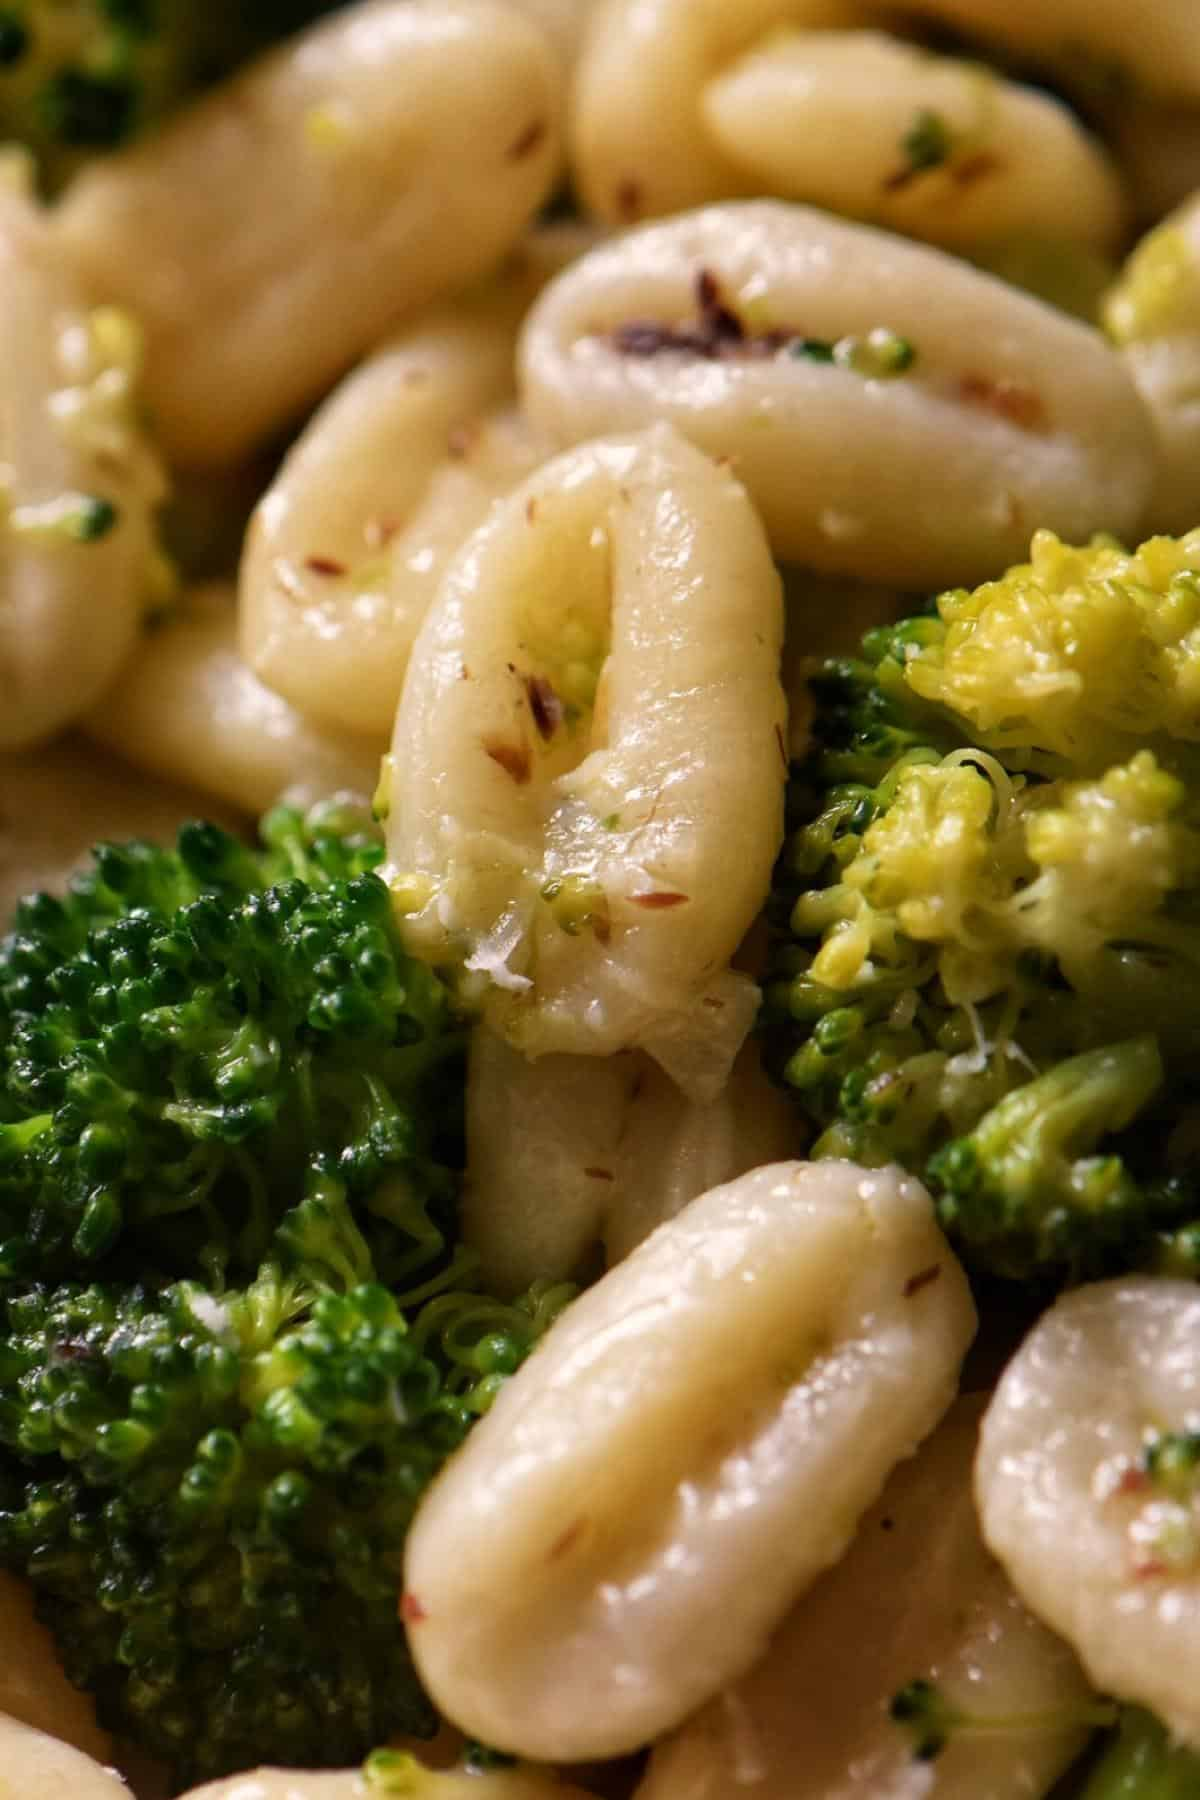 Broccoli and cavatelli combined in a large skillet.